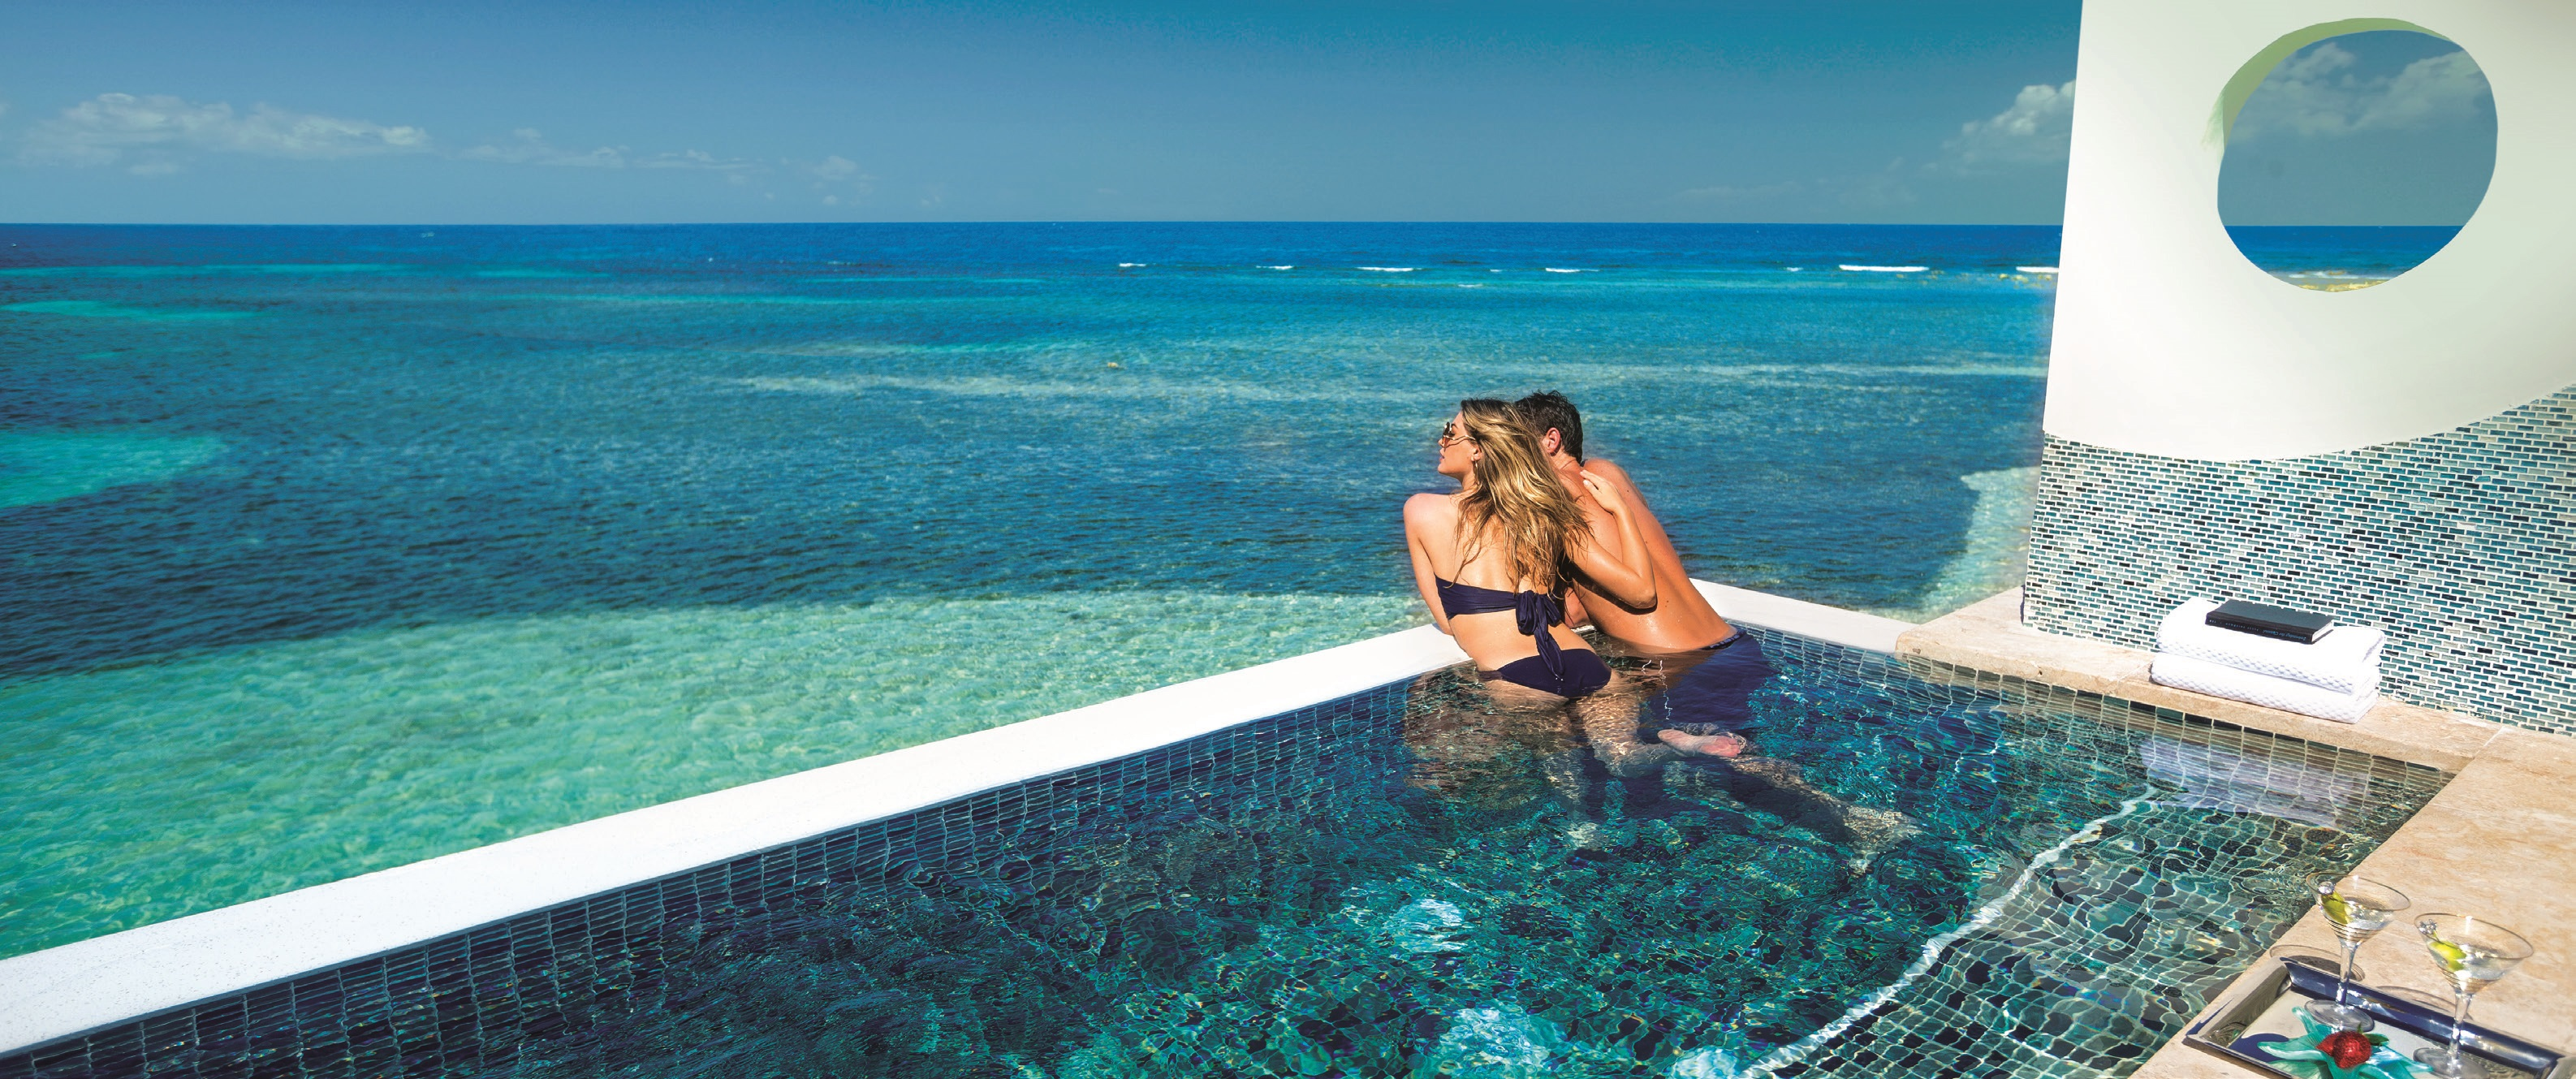 The Top 5 Honeymoon Destinations